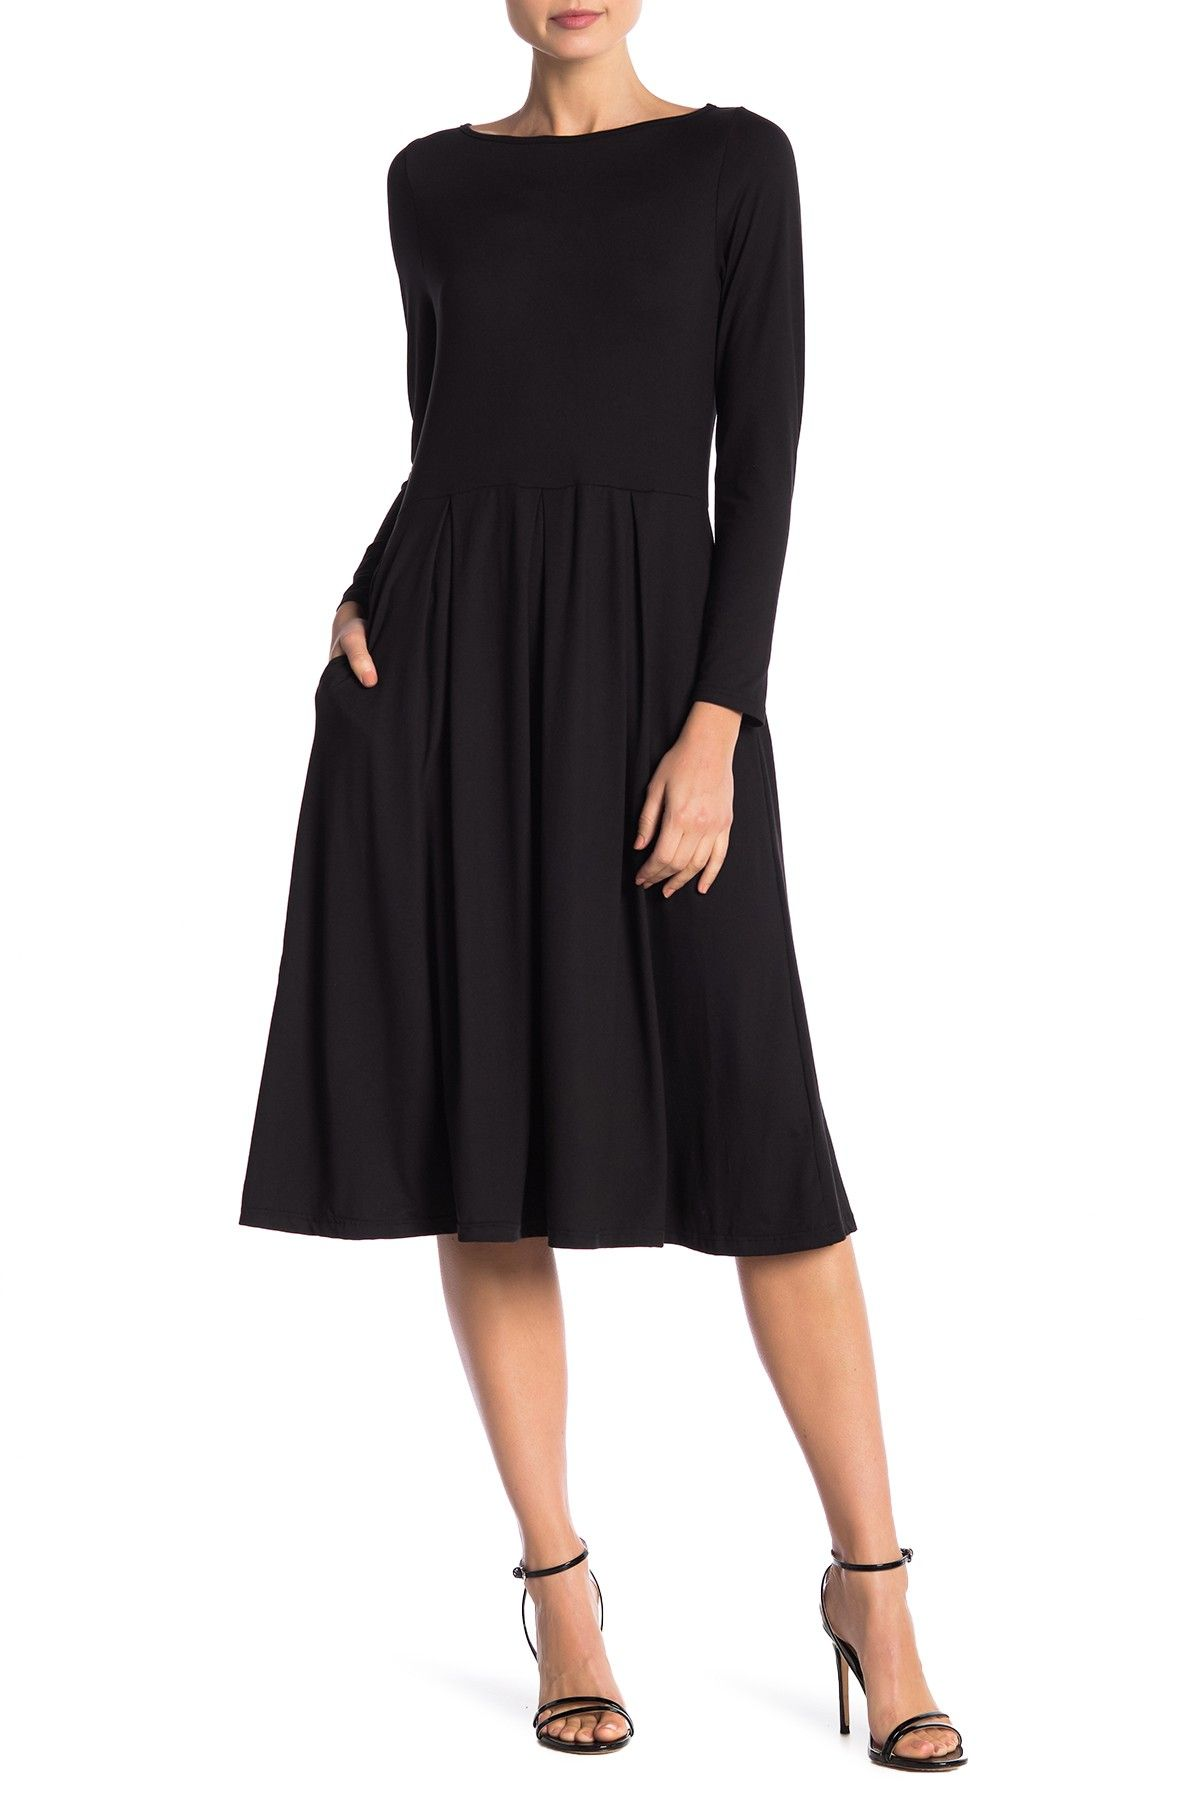 24 7 Comfort Long Sleeve Fit And Flare Midi Dress Nordstrom Rack Midi Dress Plus Size Nordstrom Dresses Fashion [ 1800 x 1200 Pixel ]